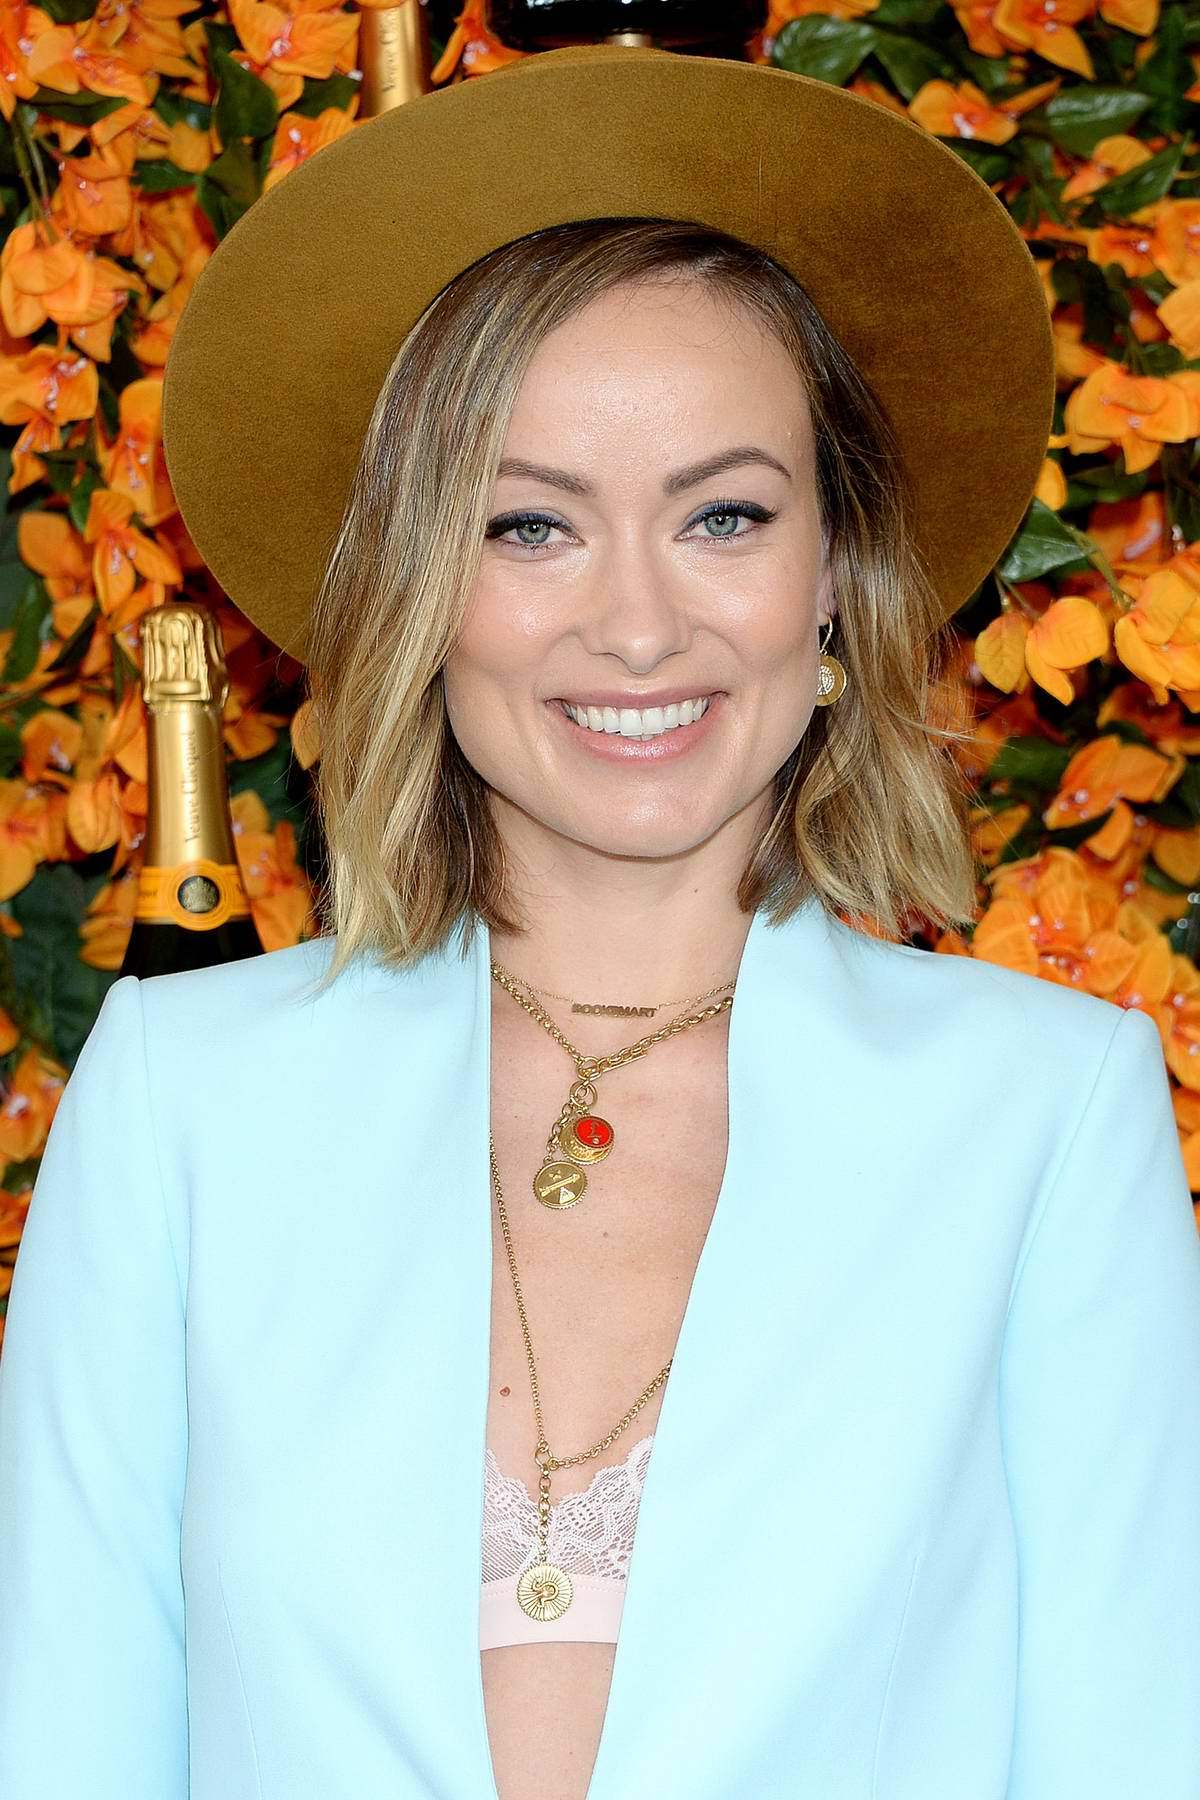 Olivia Wilde attends the Ninth Annual Veuve Clicquot Polo Classic in Los Angeles